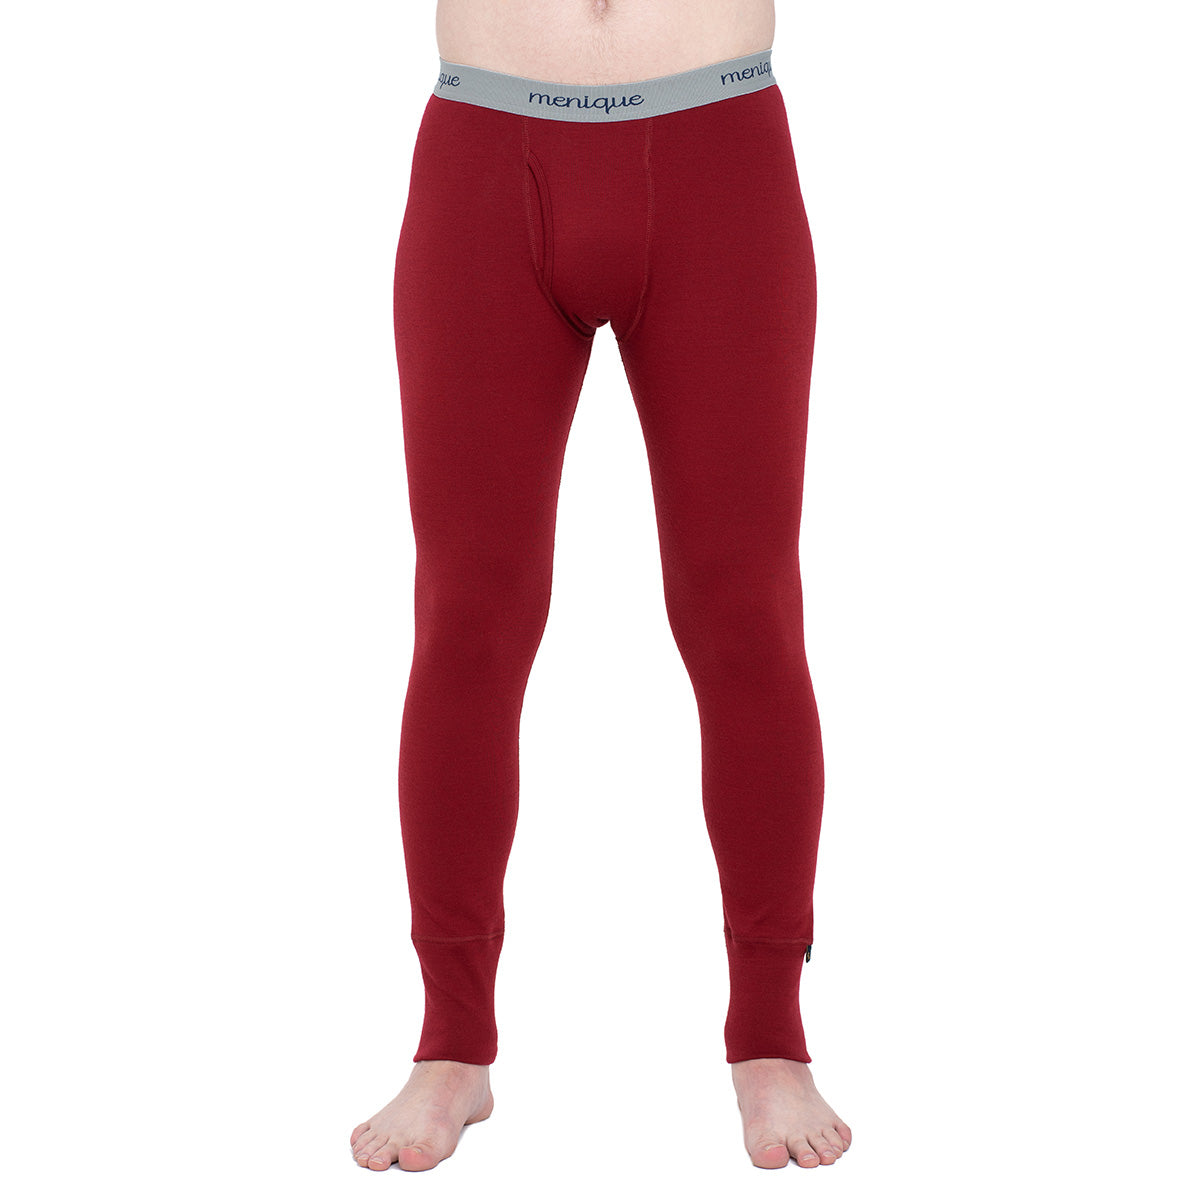 menique Men's Merino 250 Pants RB Royal Cherry Color